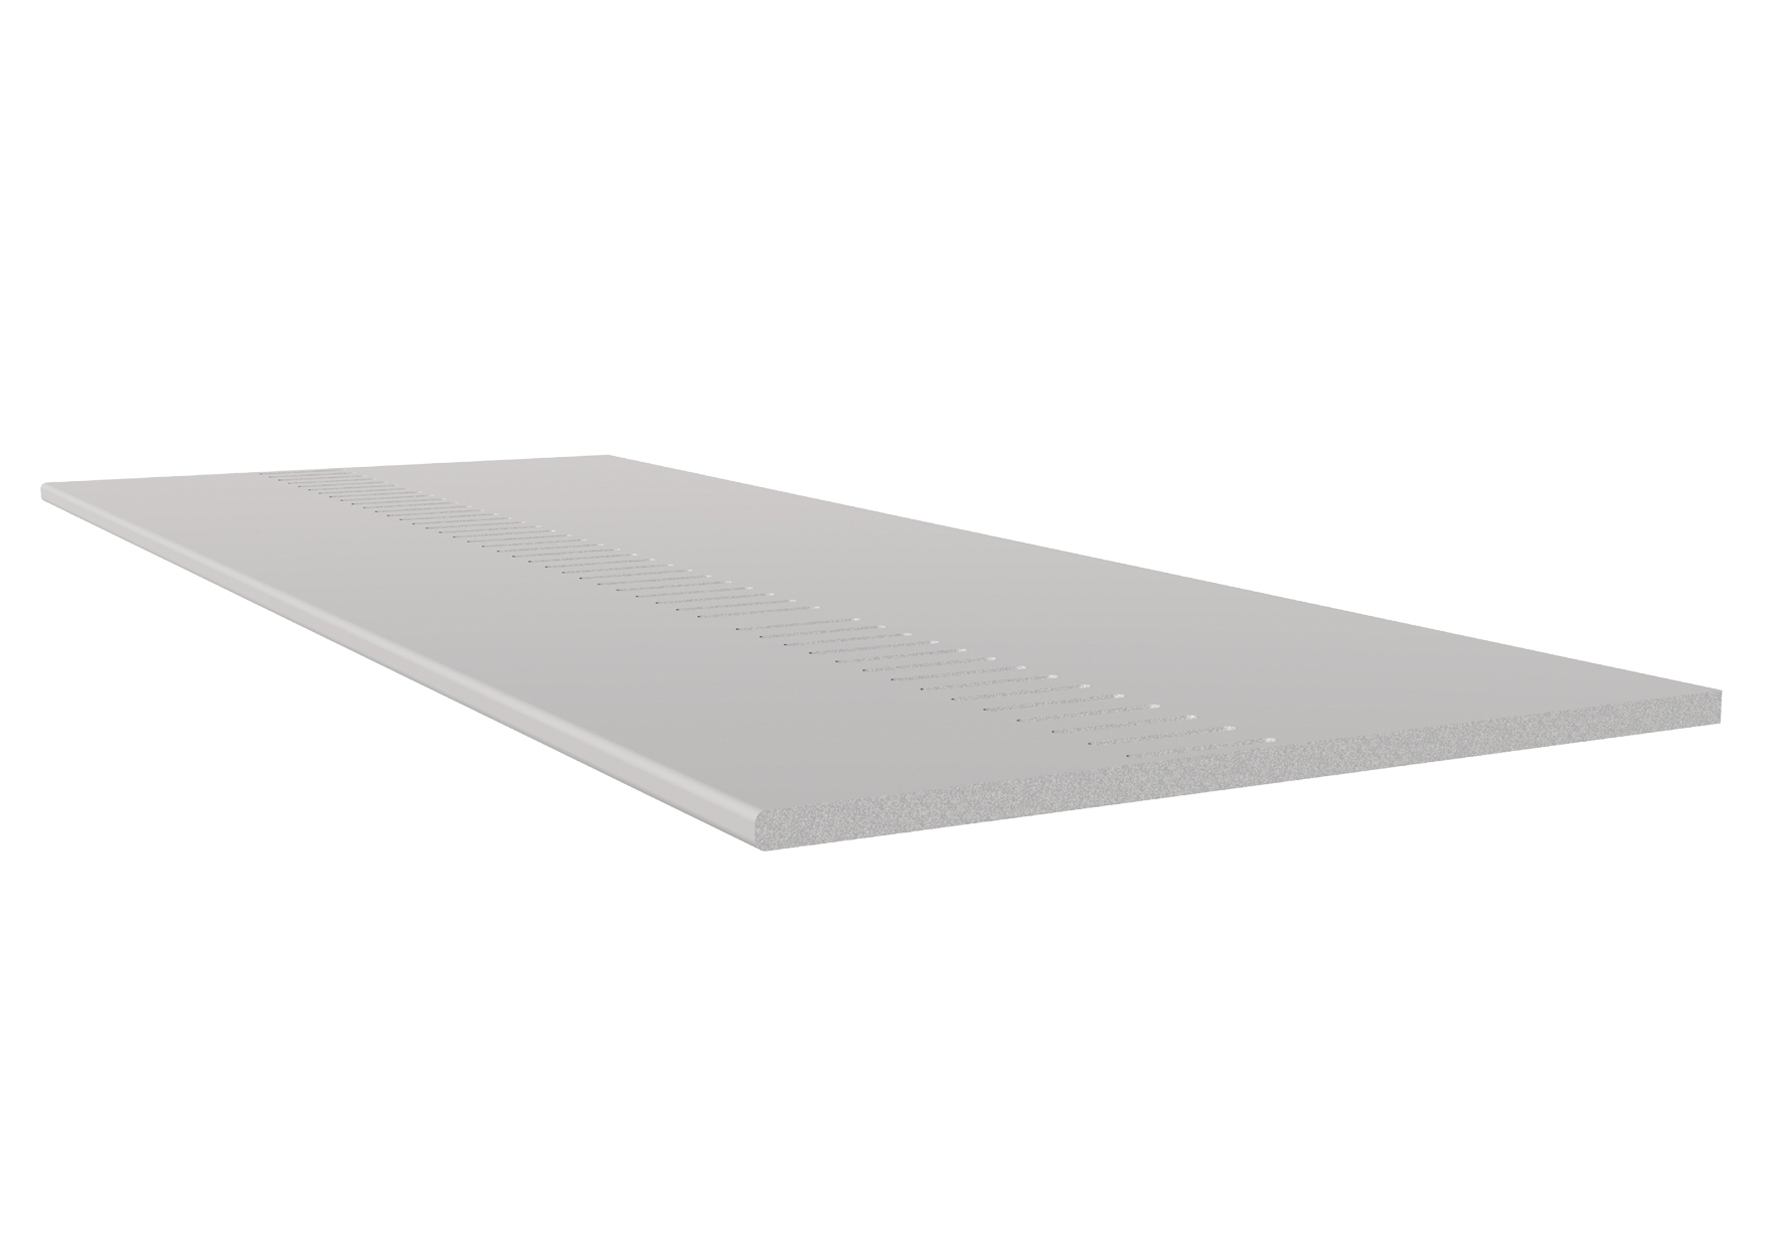 10mm Flat Vented Soffit Board Chelmsford Plastic Warehouse